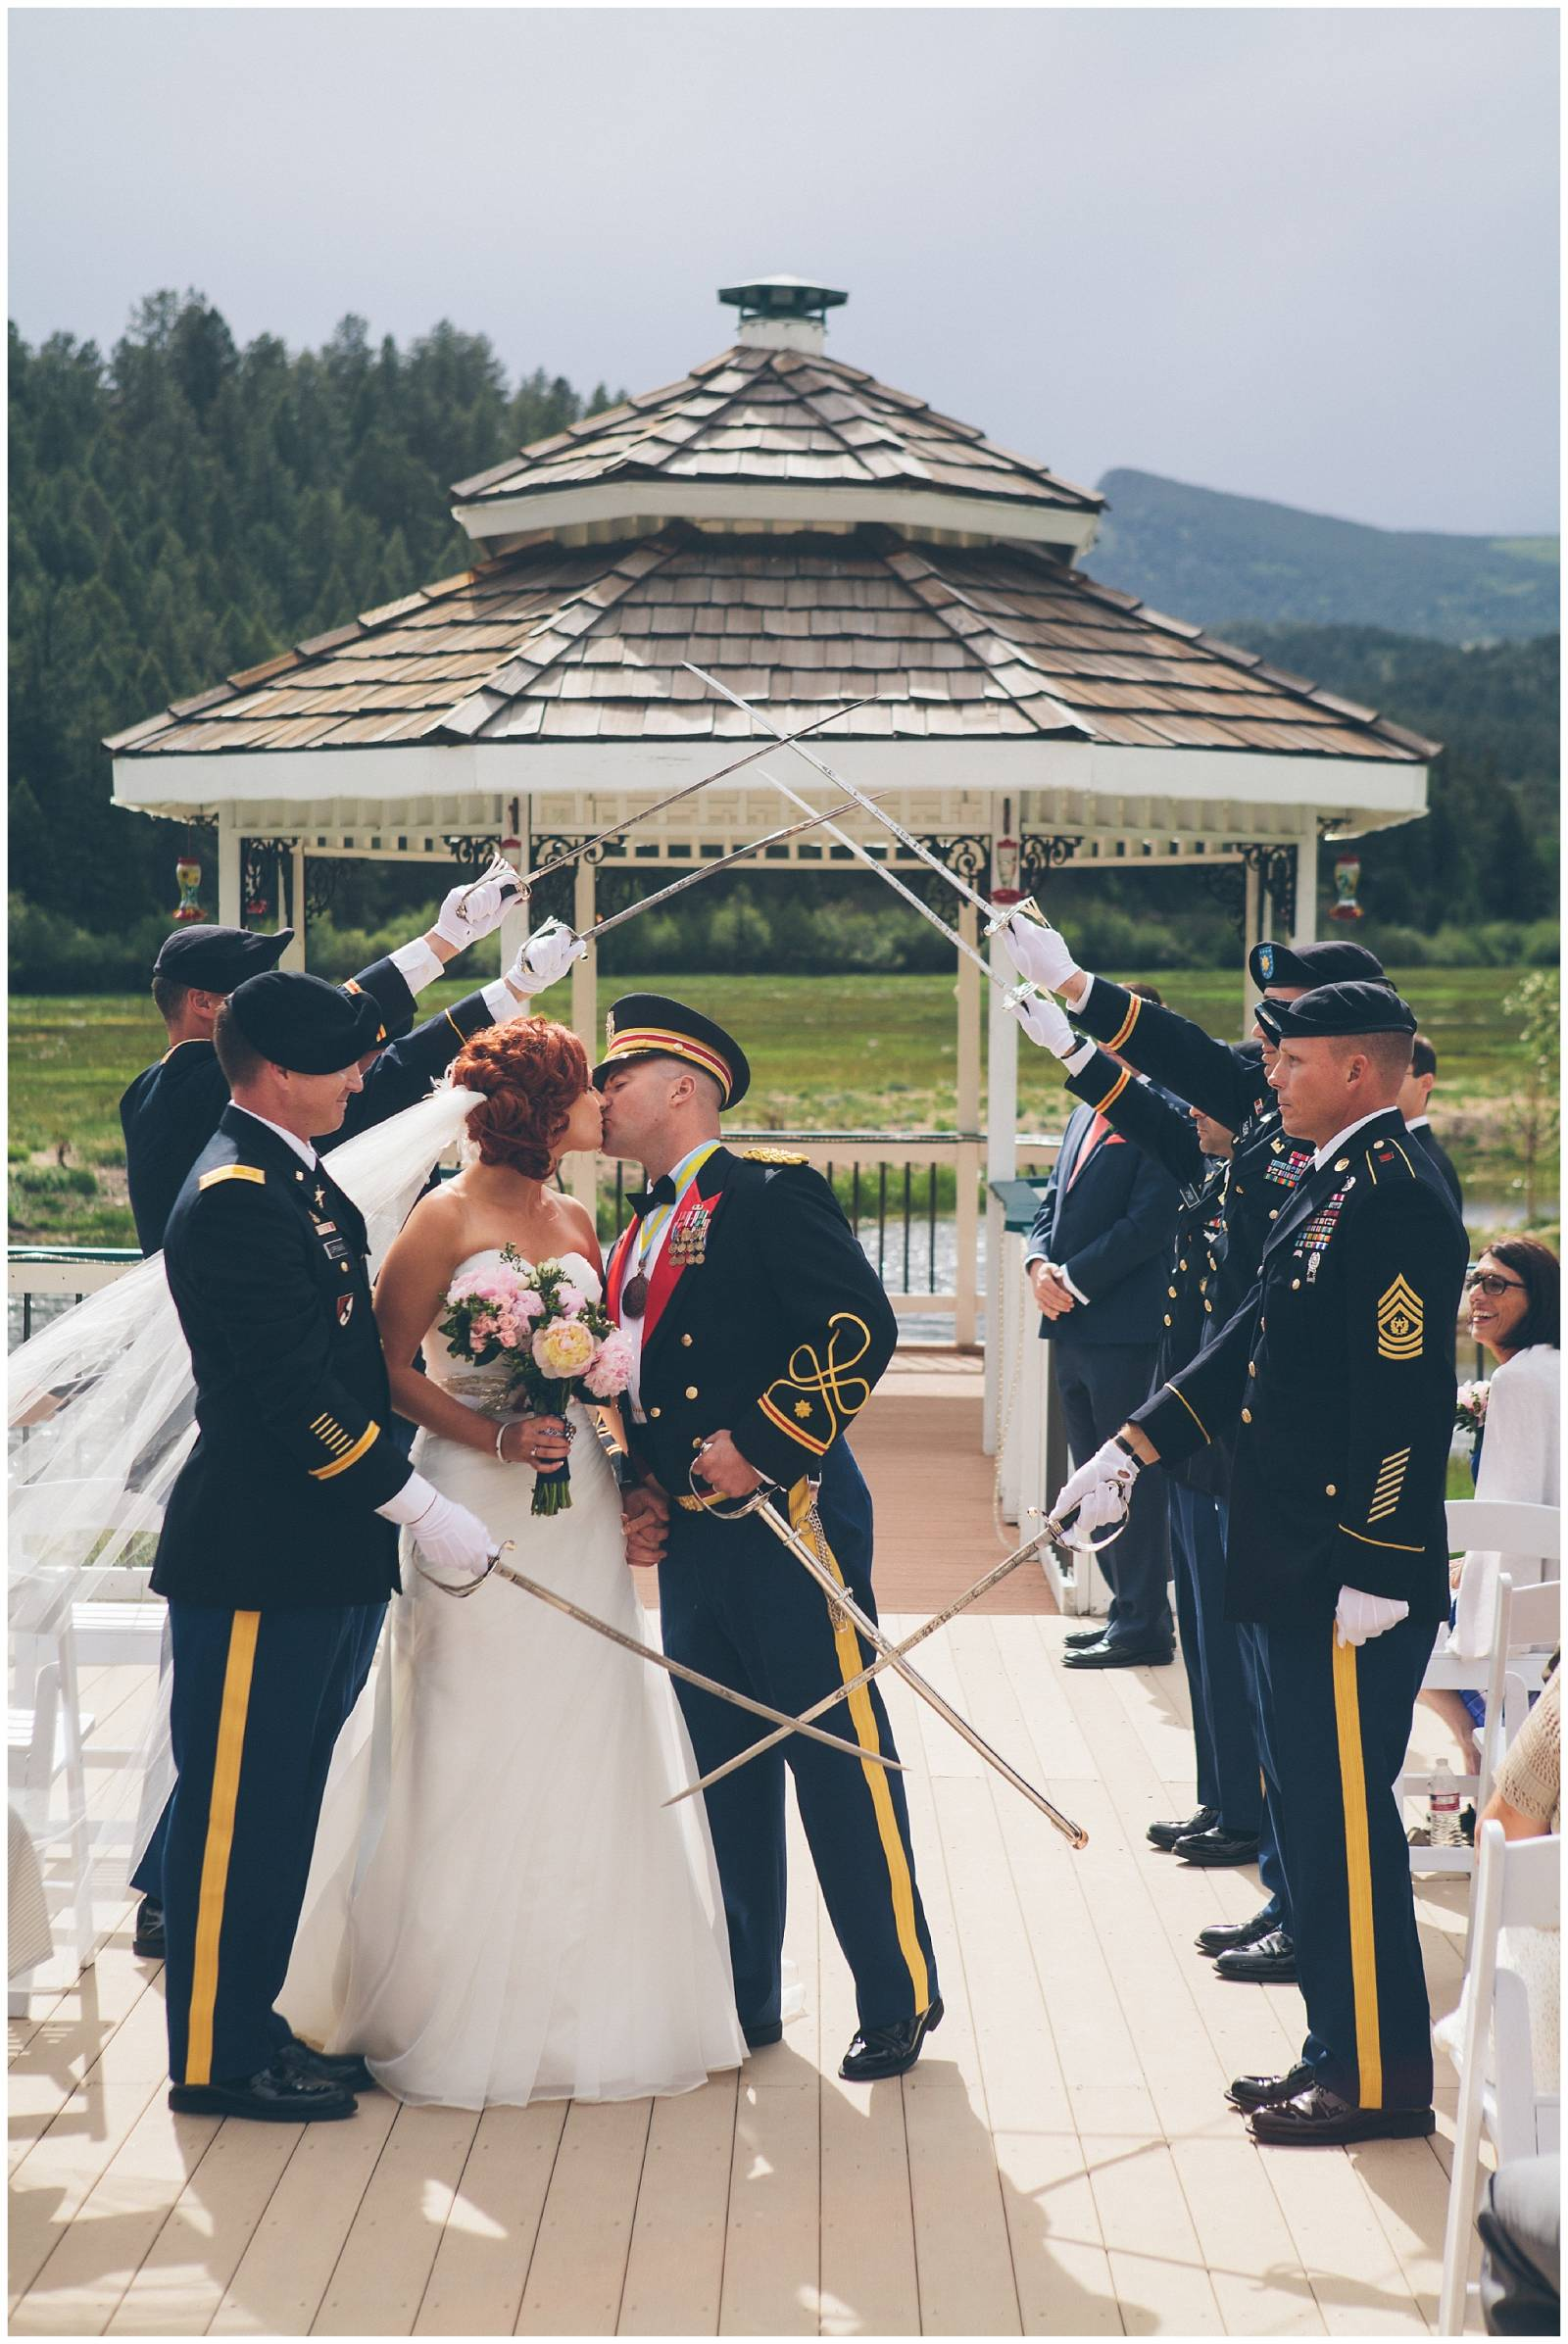 bride and groom walking through military swords | mountain wedding ceremony designed by Glow Events